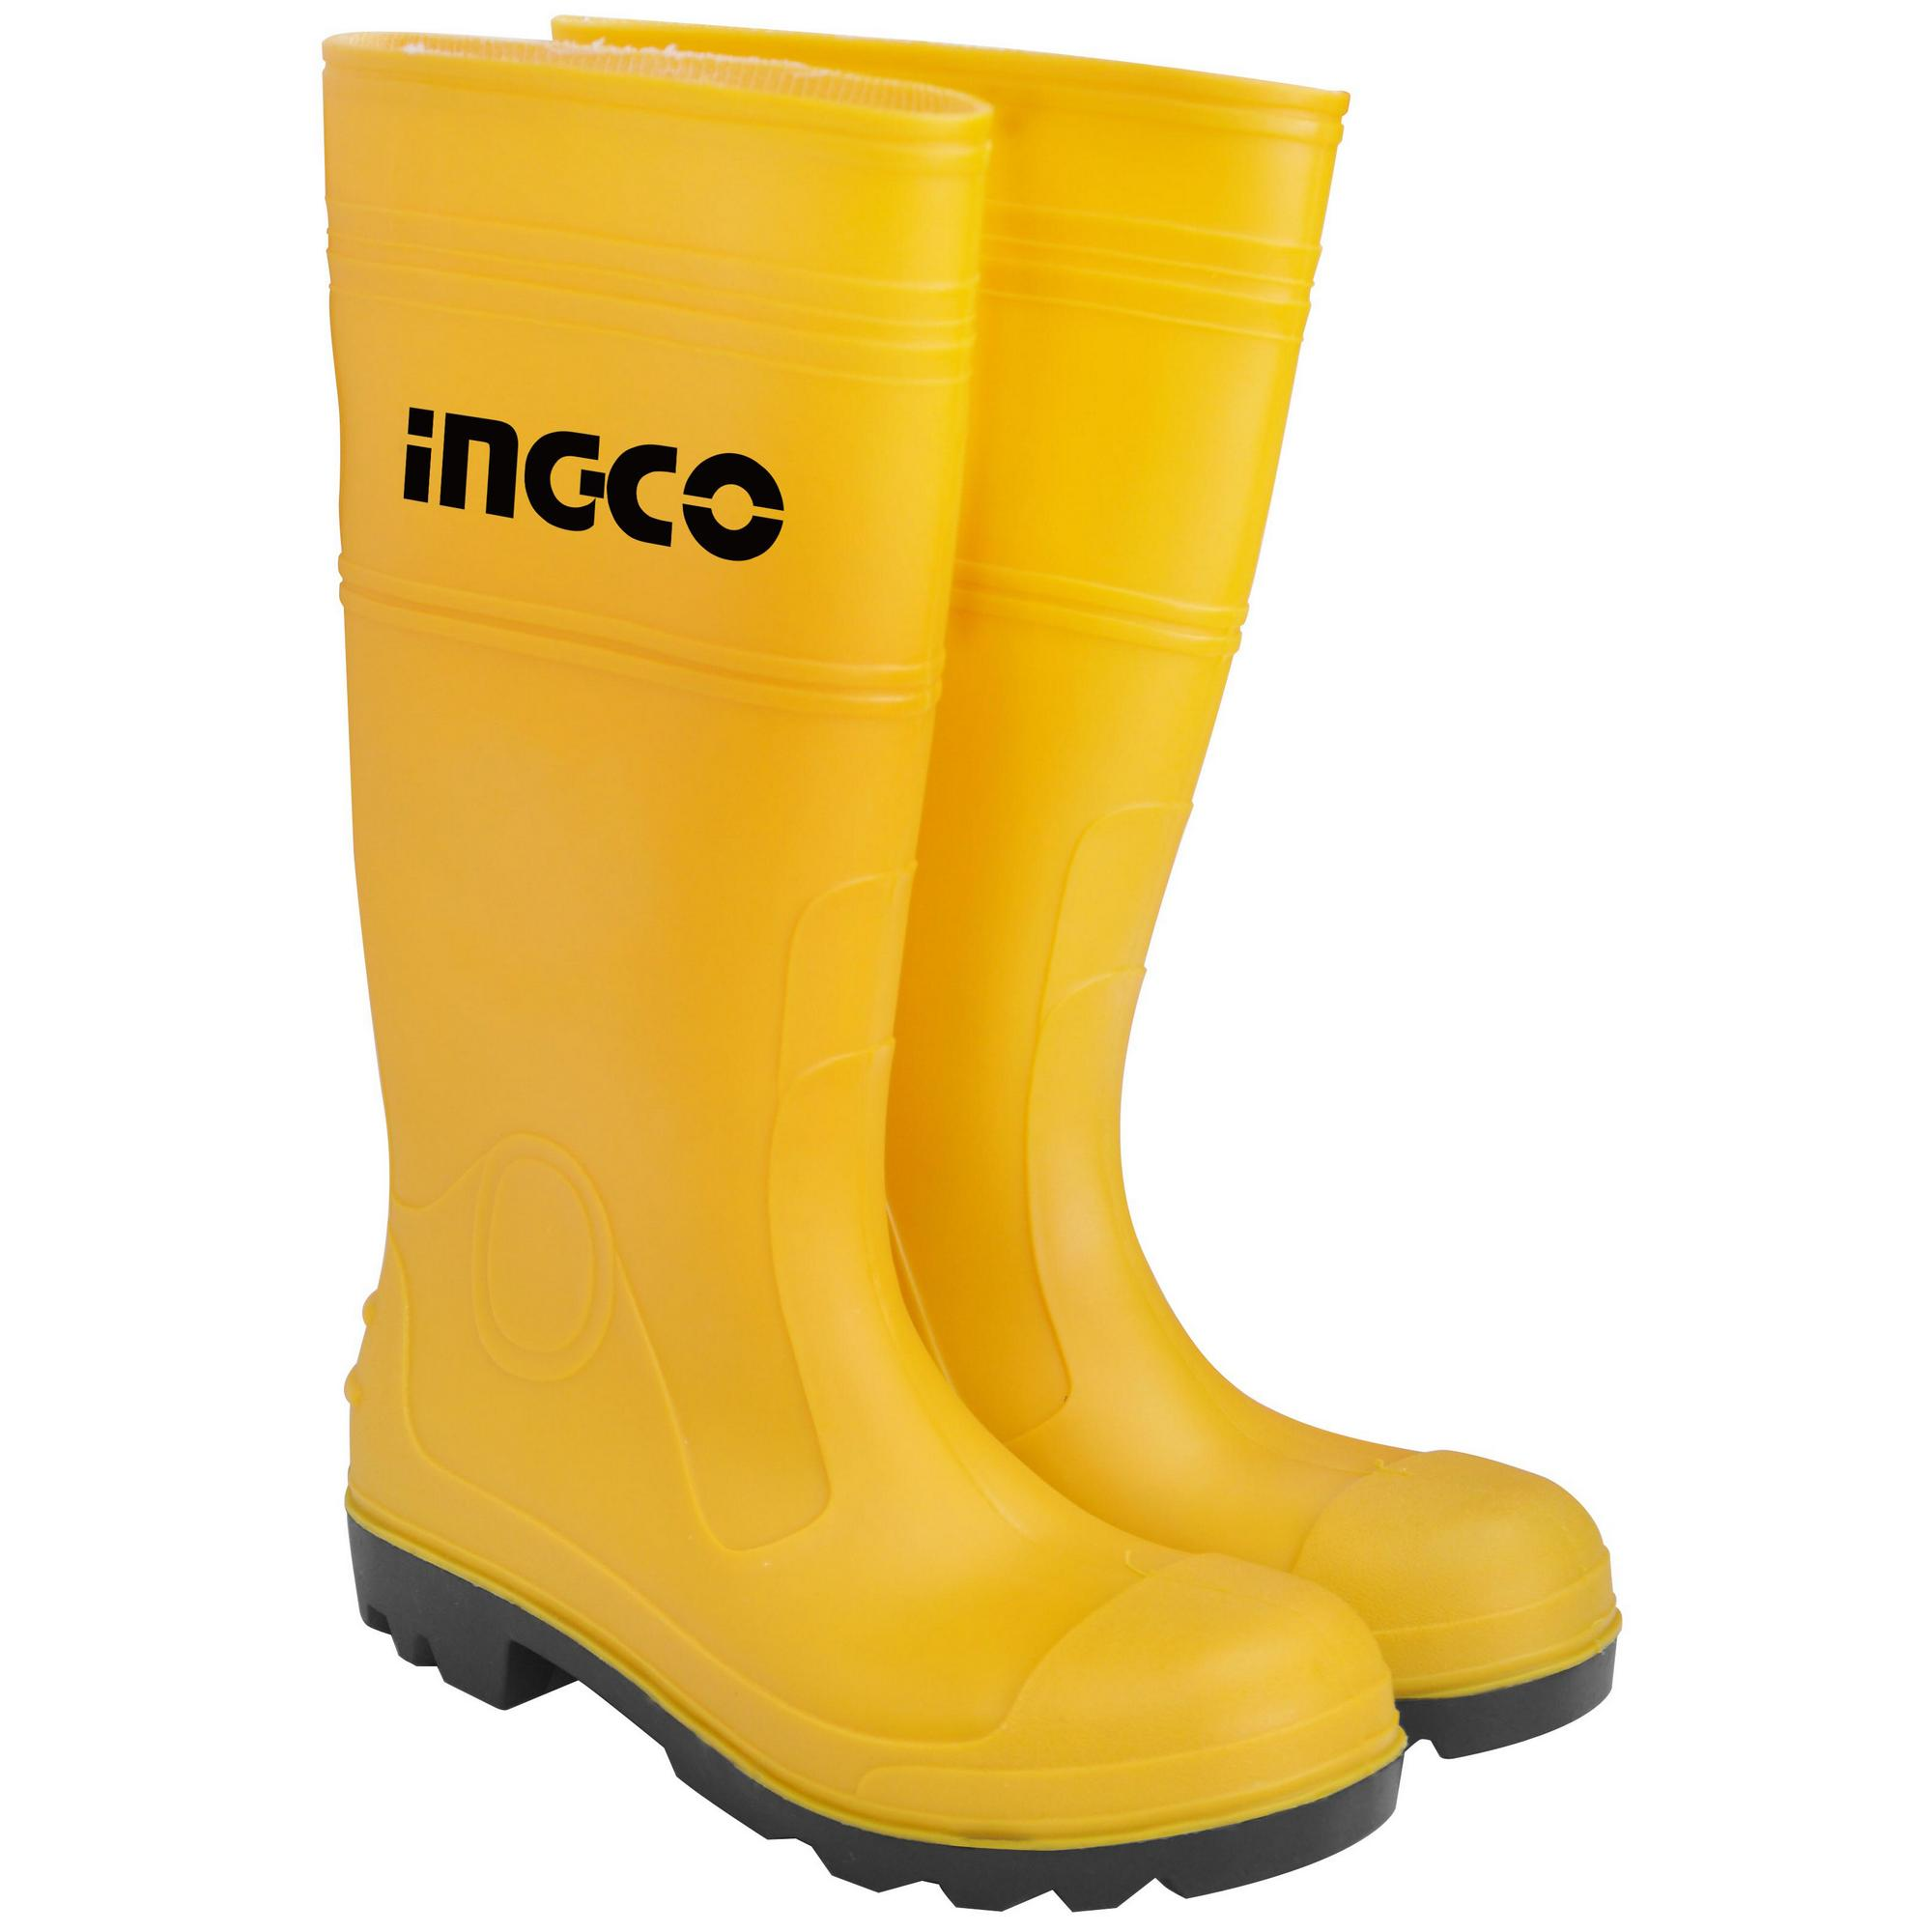 SAFETY SHOES - INGCO Image